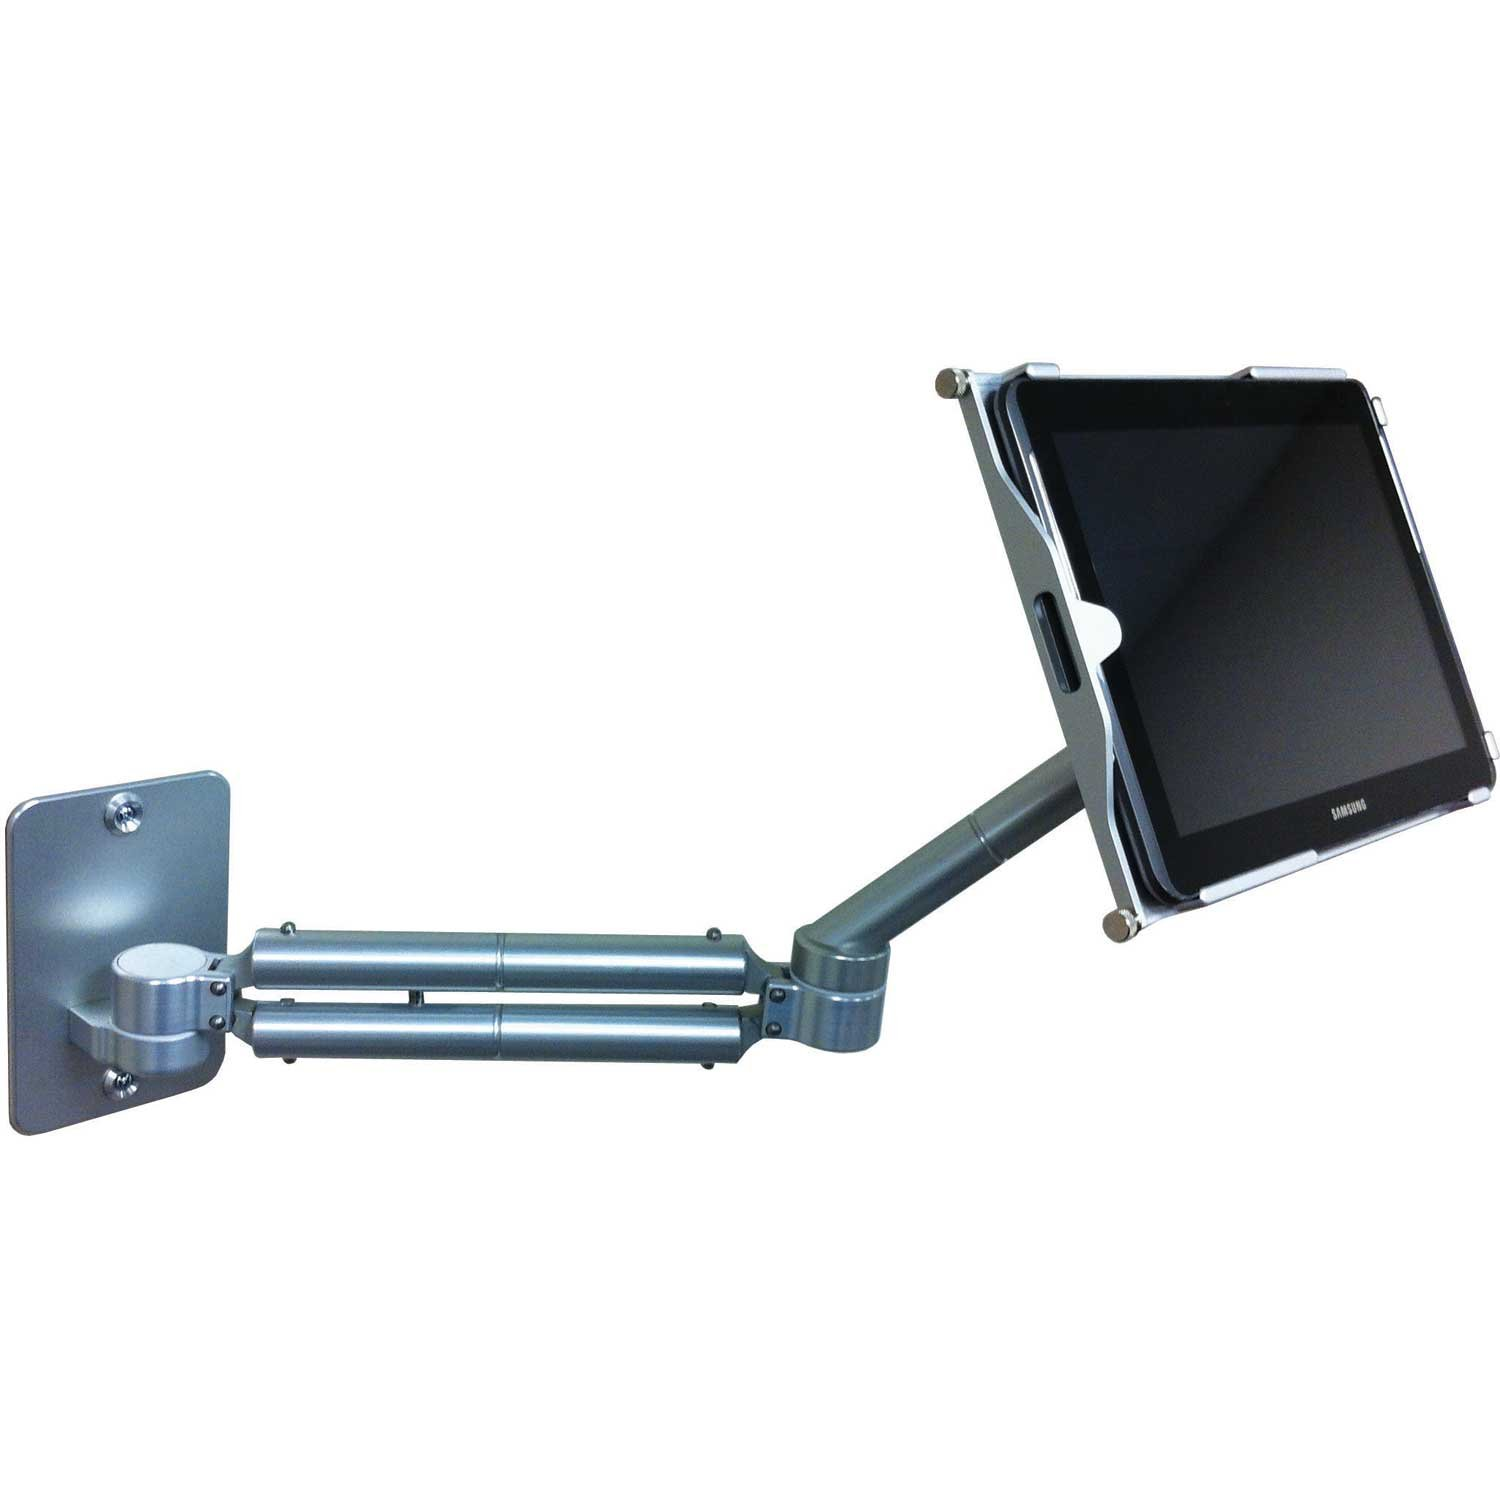 Tablet Lift Through Desk Mount For 10-inch Samsung Galaxy Tab 2 with Secure Holder